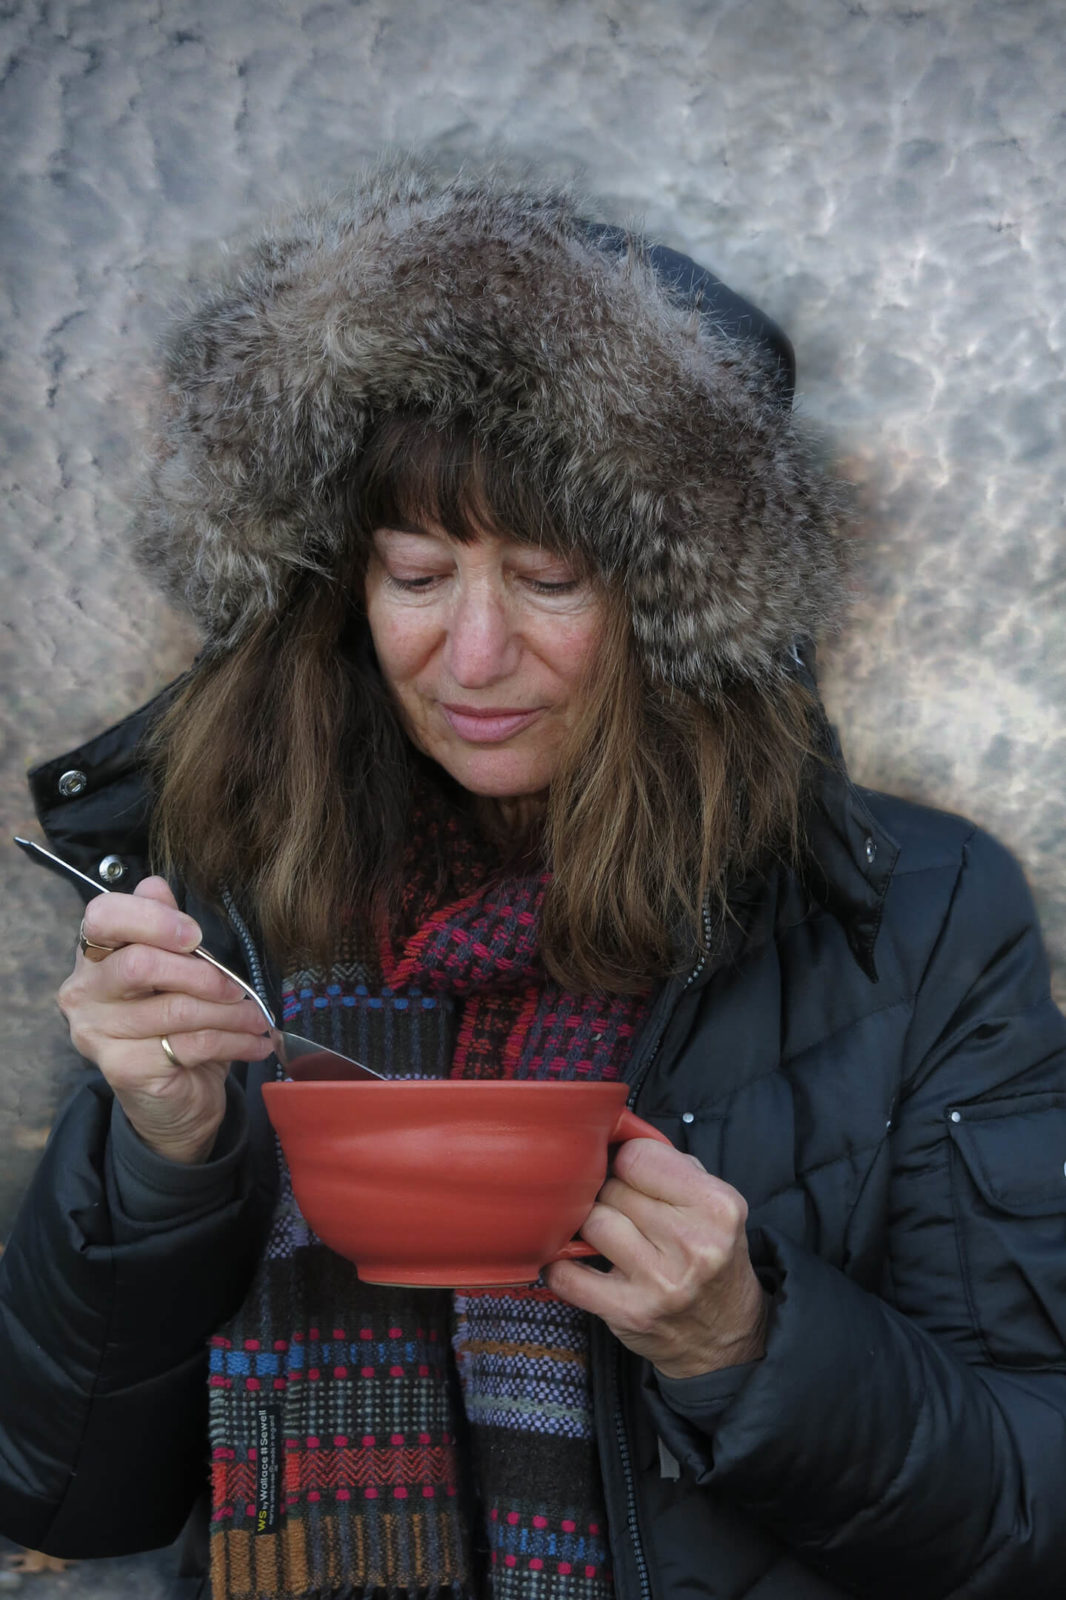 Robin Botie of Ithaca, New York, savors her storm food, a bowl of hearty stew.